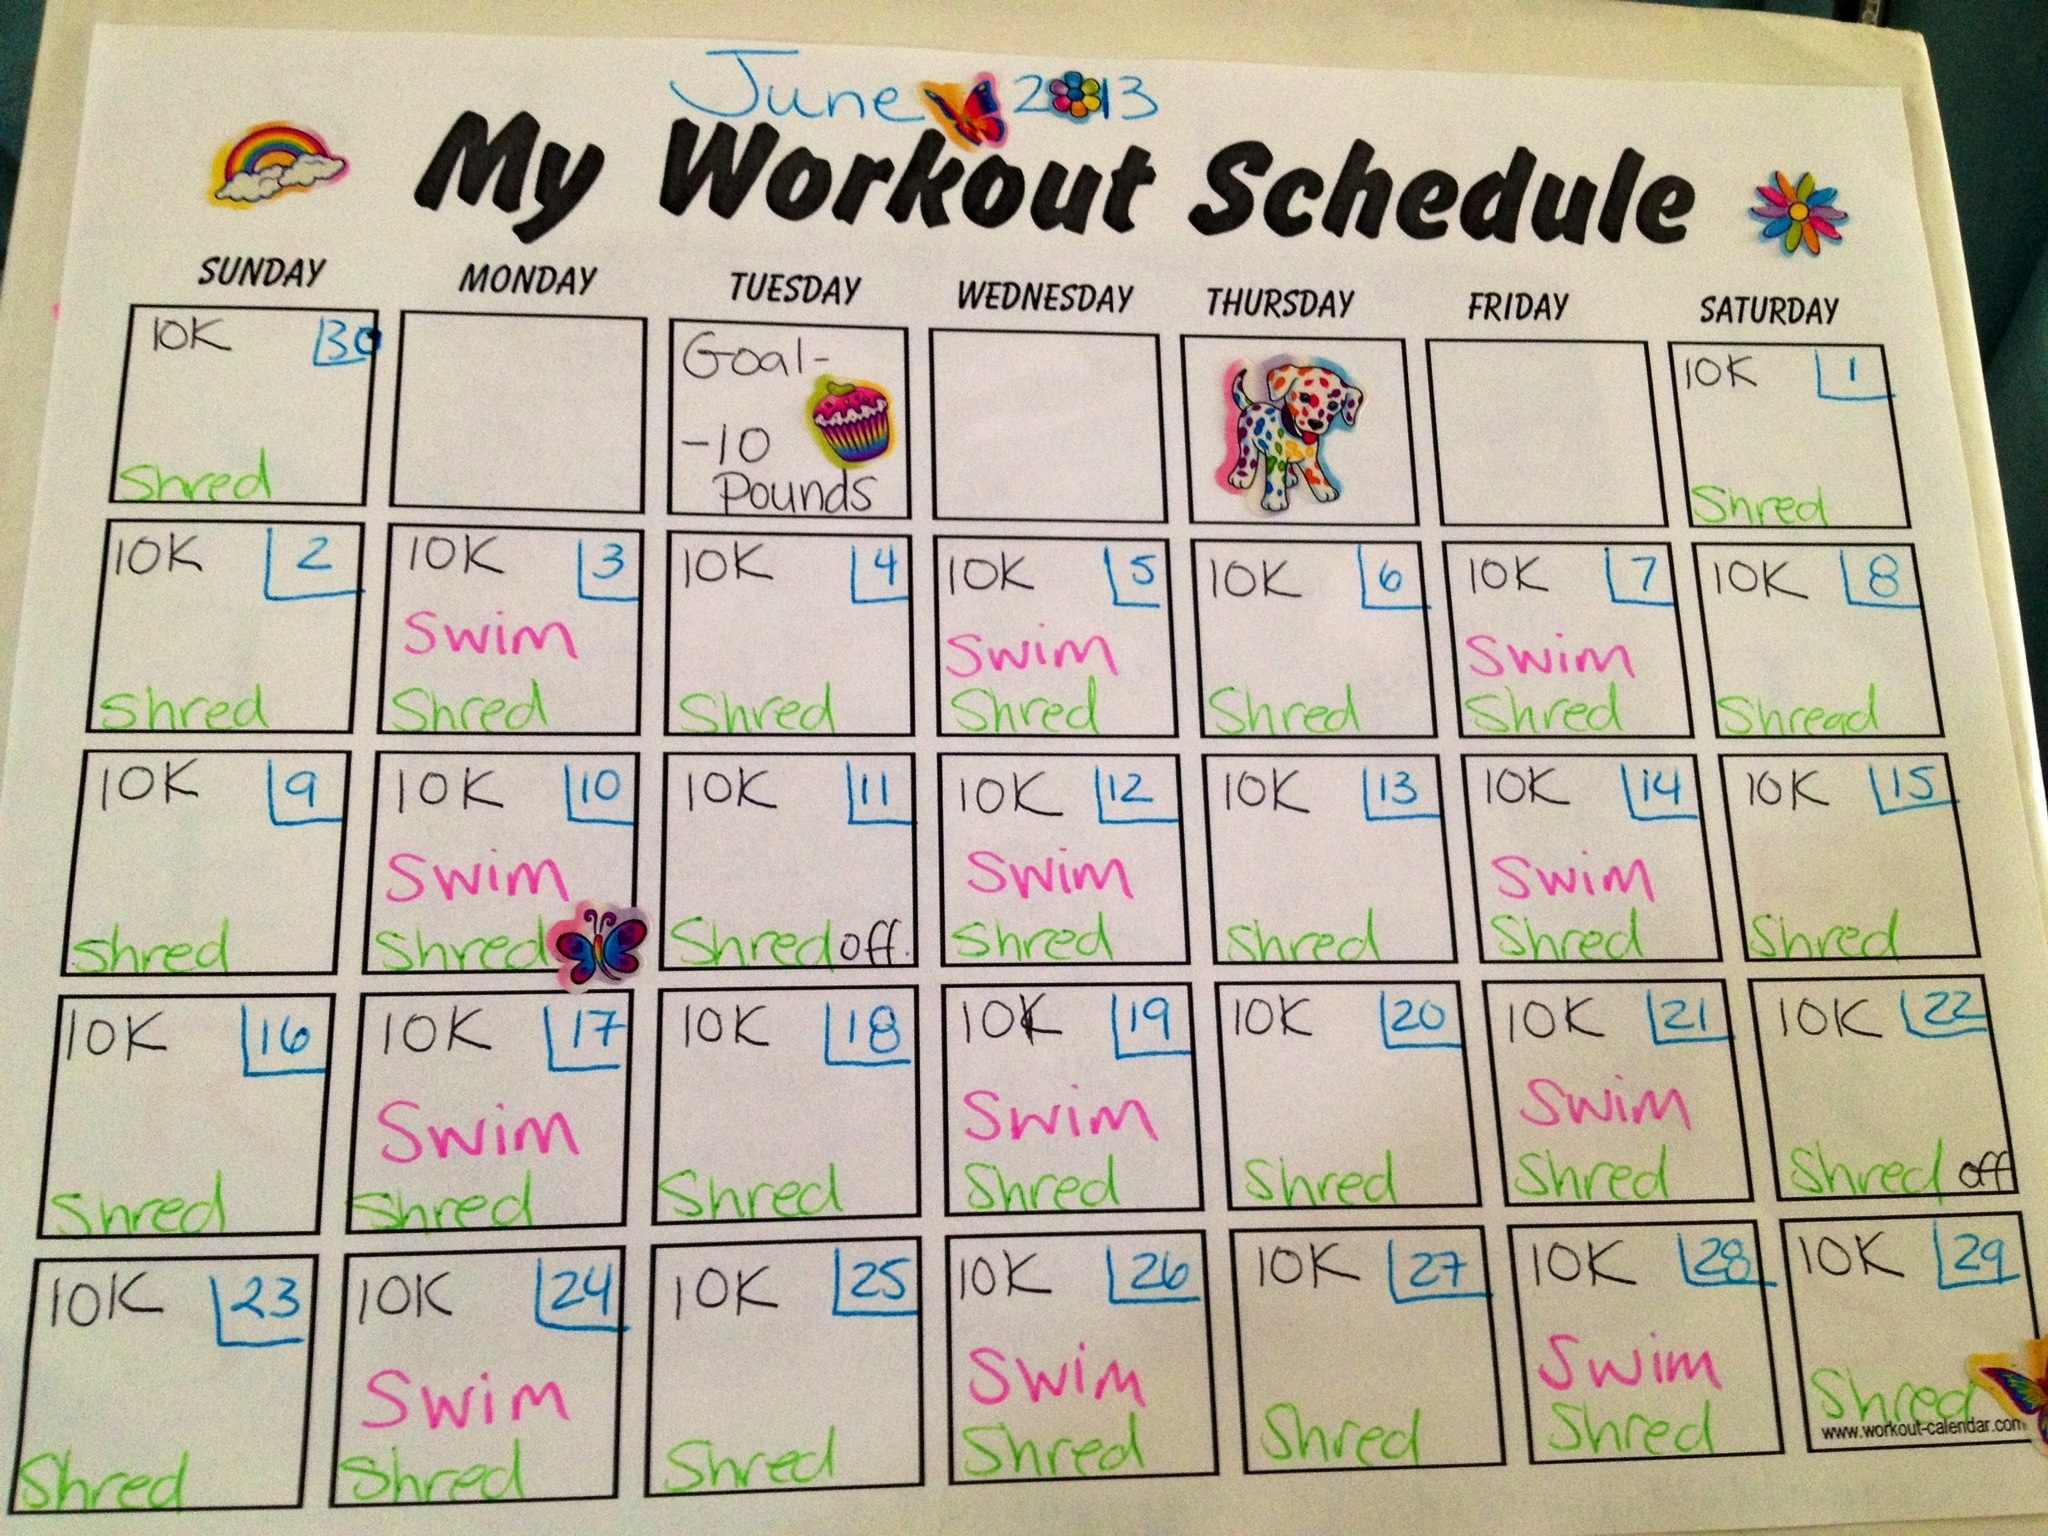 Jillian Michaels Body Revolution Schedule | New Calendar Template Site